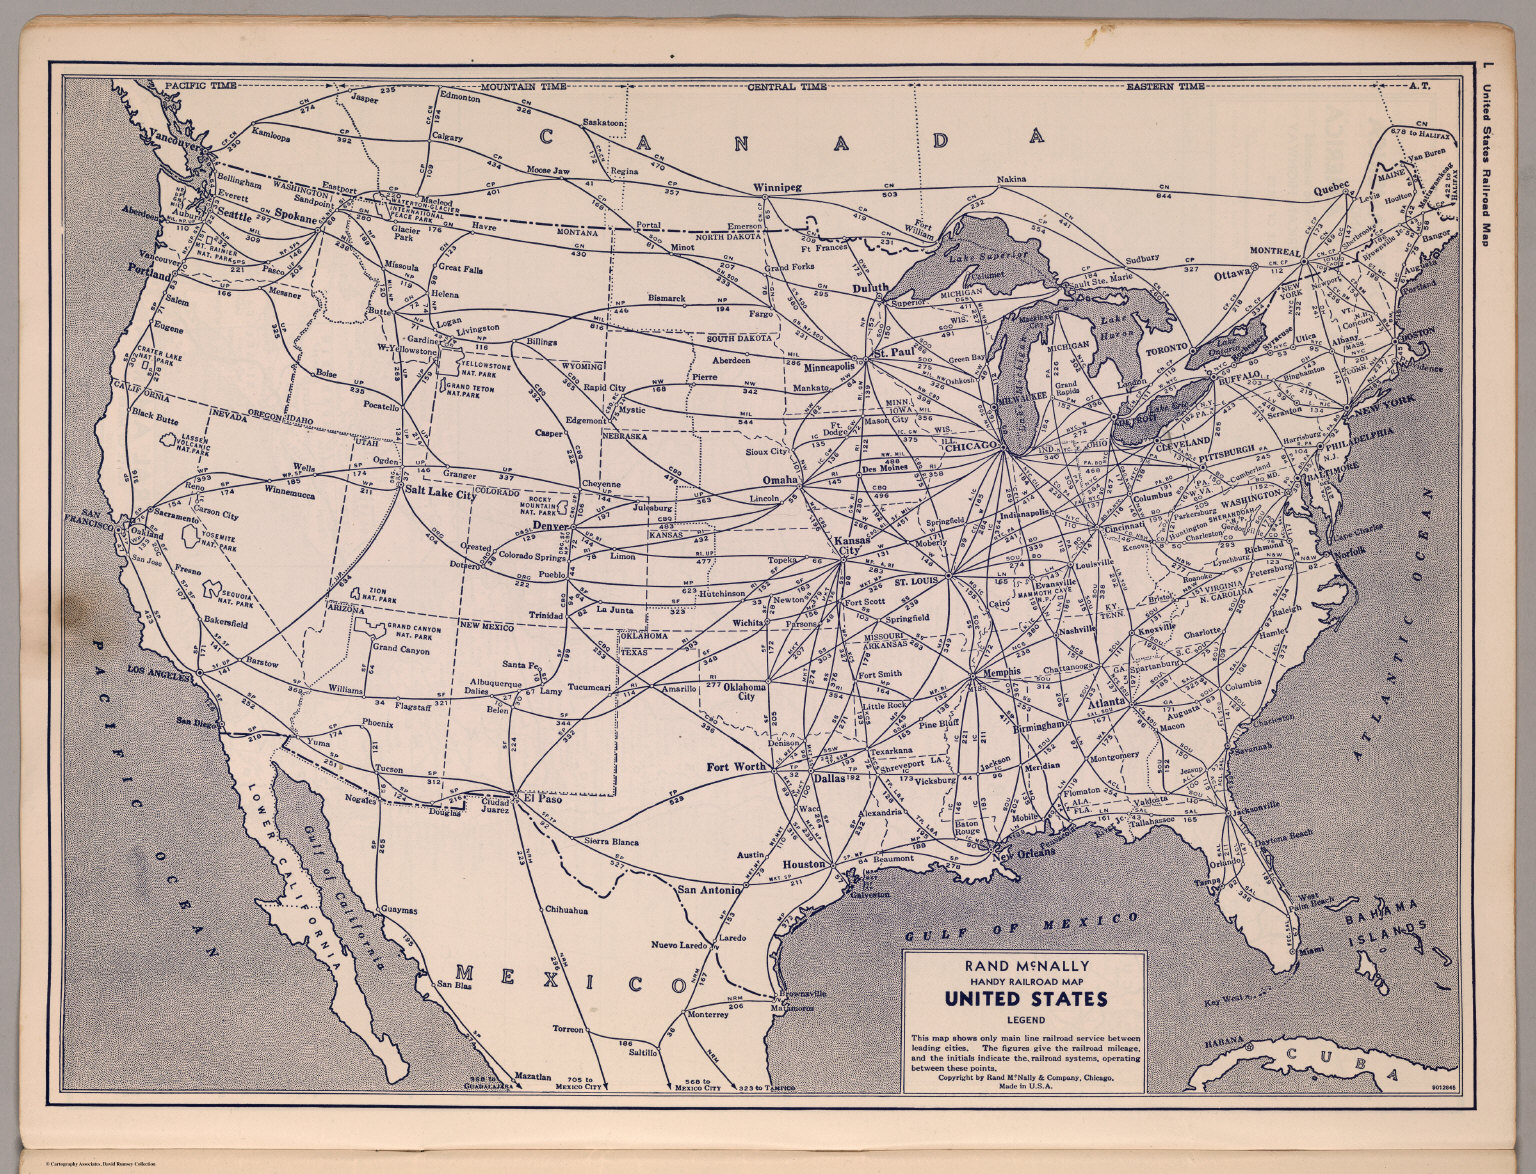 Class I Railroads Mile Private Rail Network Delivers For - Us highway map 1940